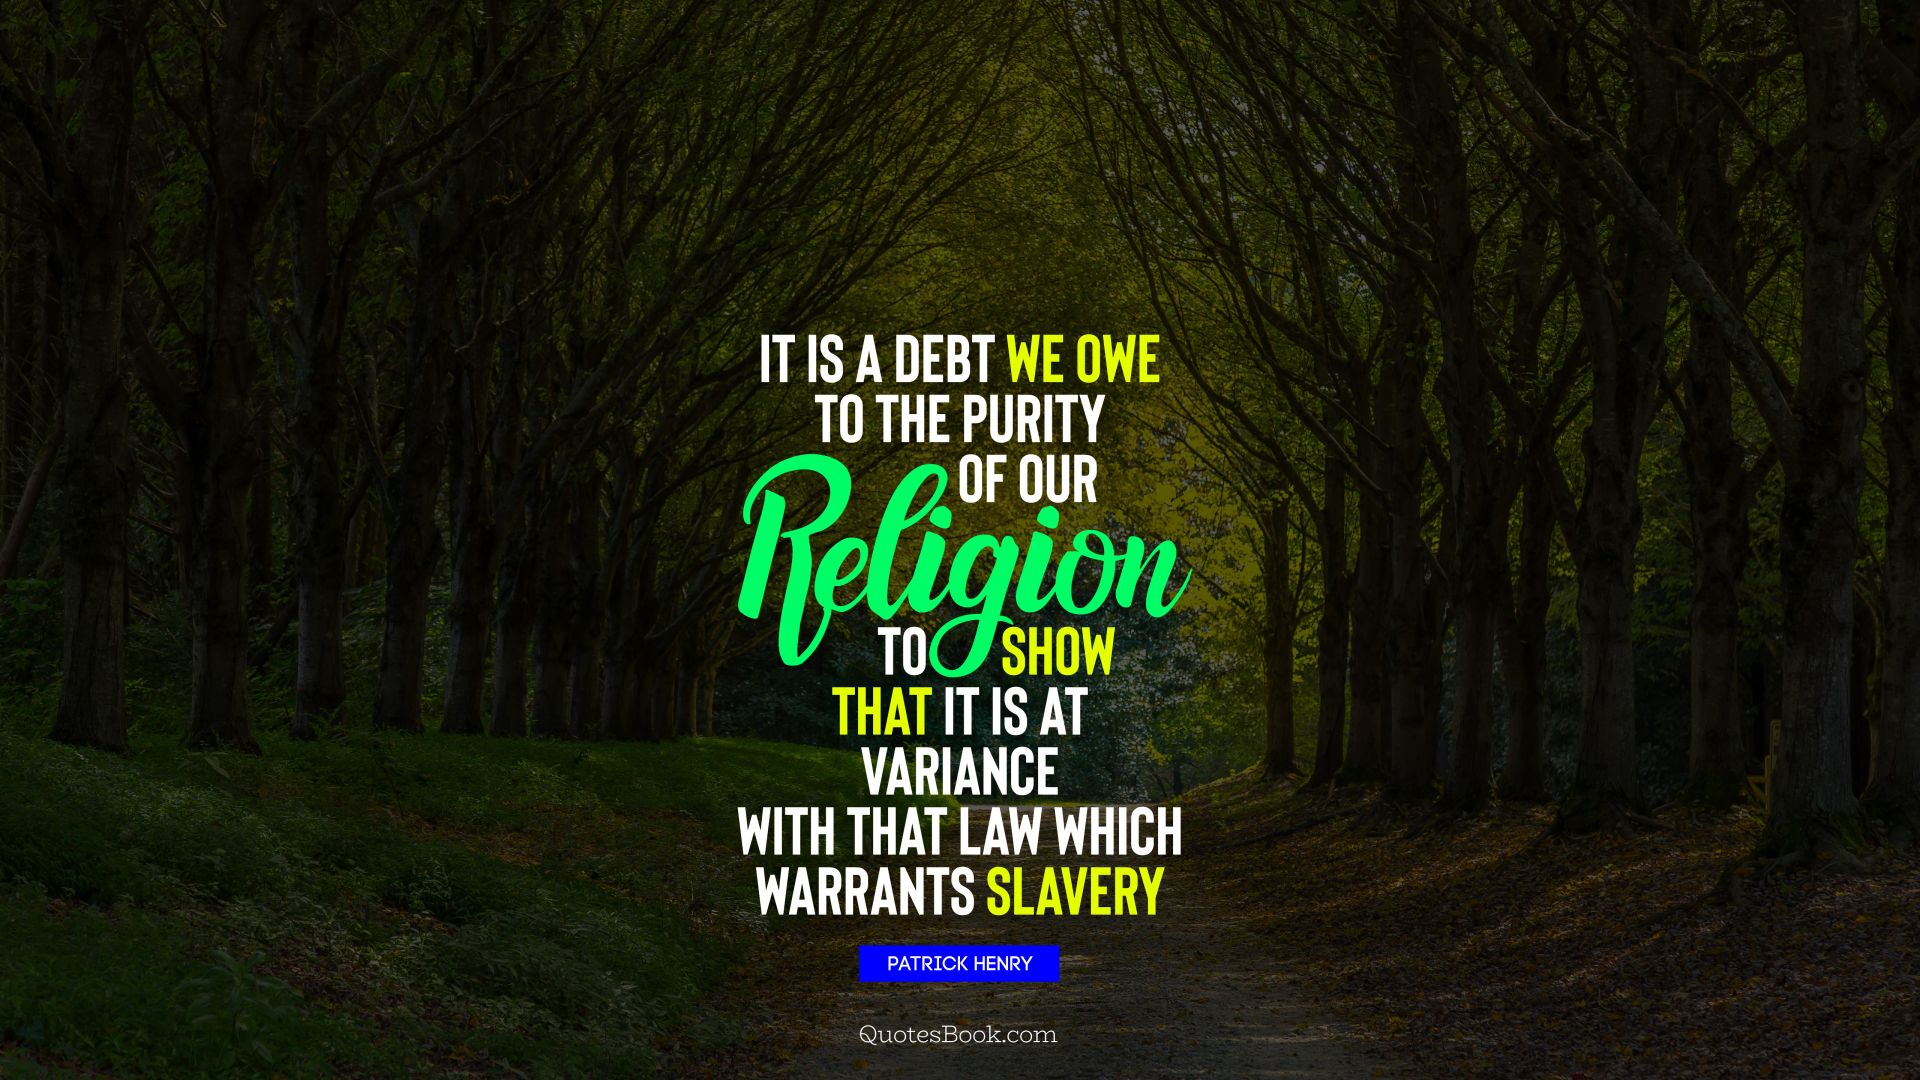 It is a debt we owe to the purity of our religion to show that it is at variance with that law which warrants slavery. - Quote by Patrick Henry